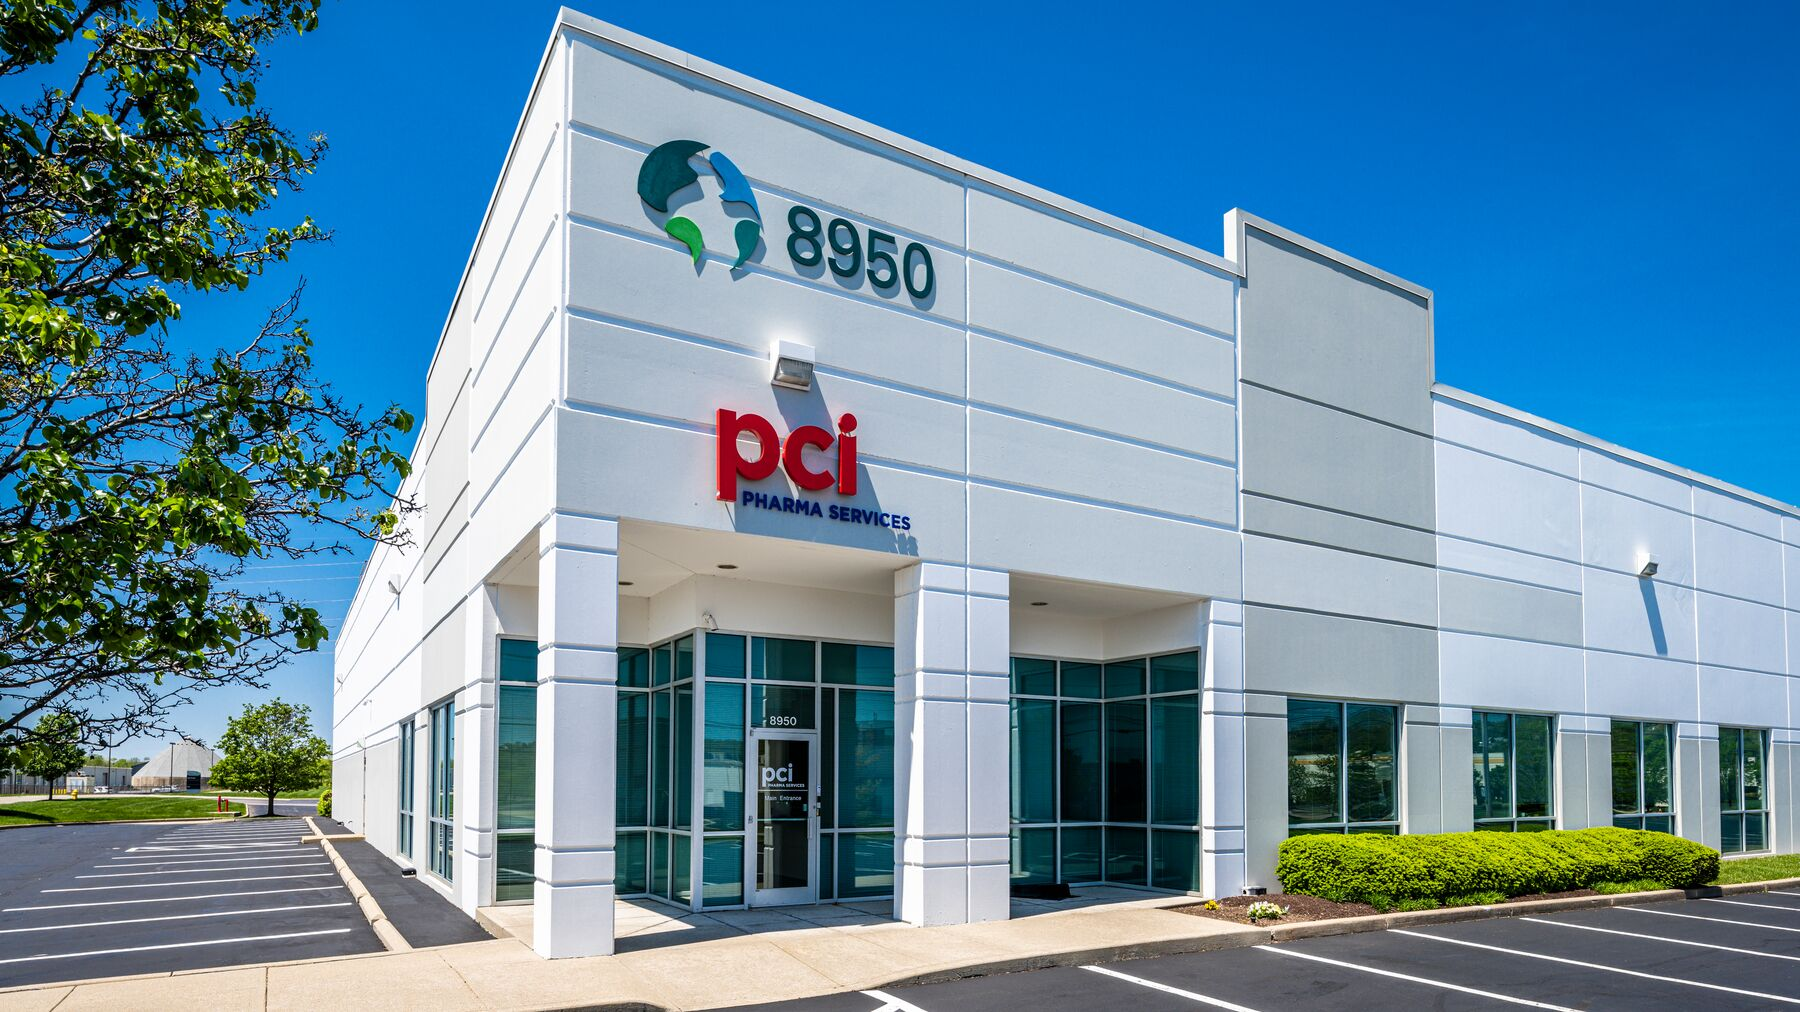 DPM-8930-8950-Global-Way-West-Chester-OH-210501-6-1.jpg